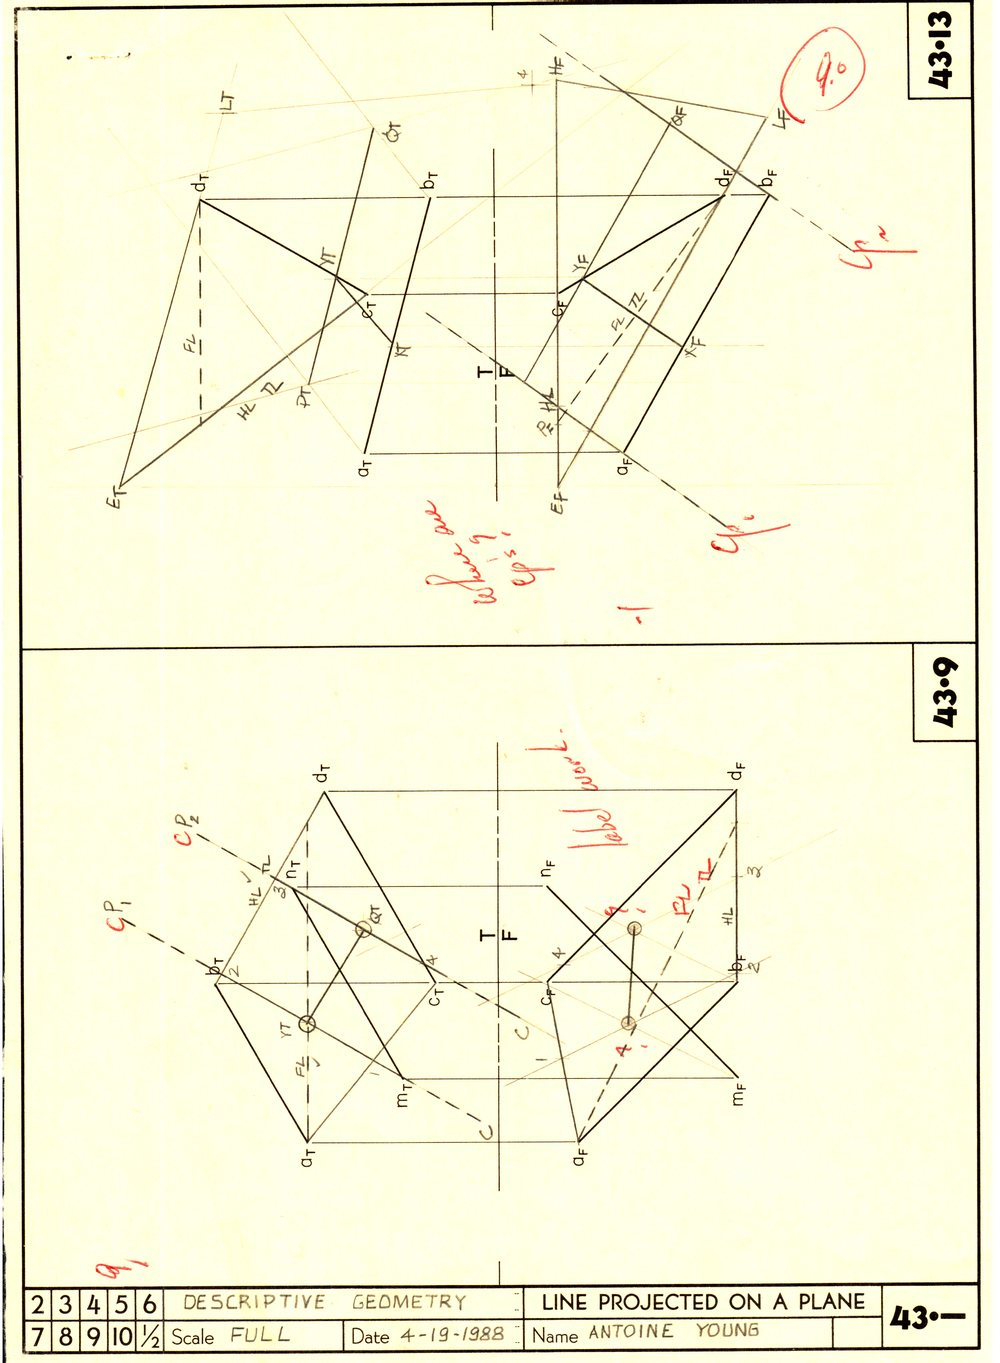 Geometric Tolerance & Dimensioning 1